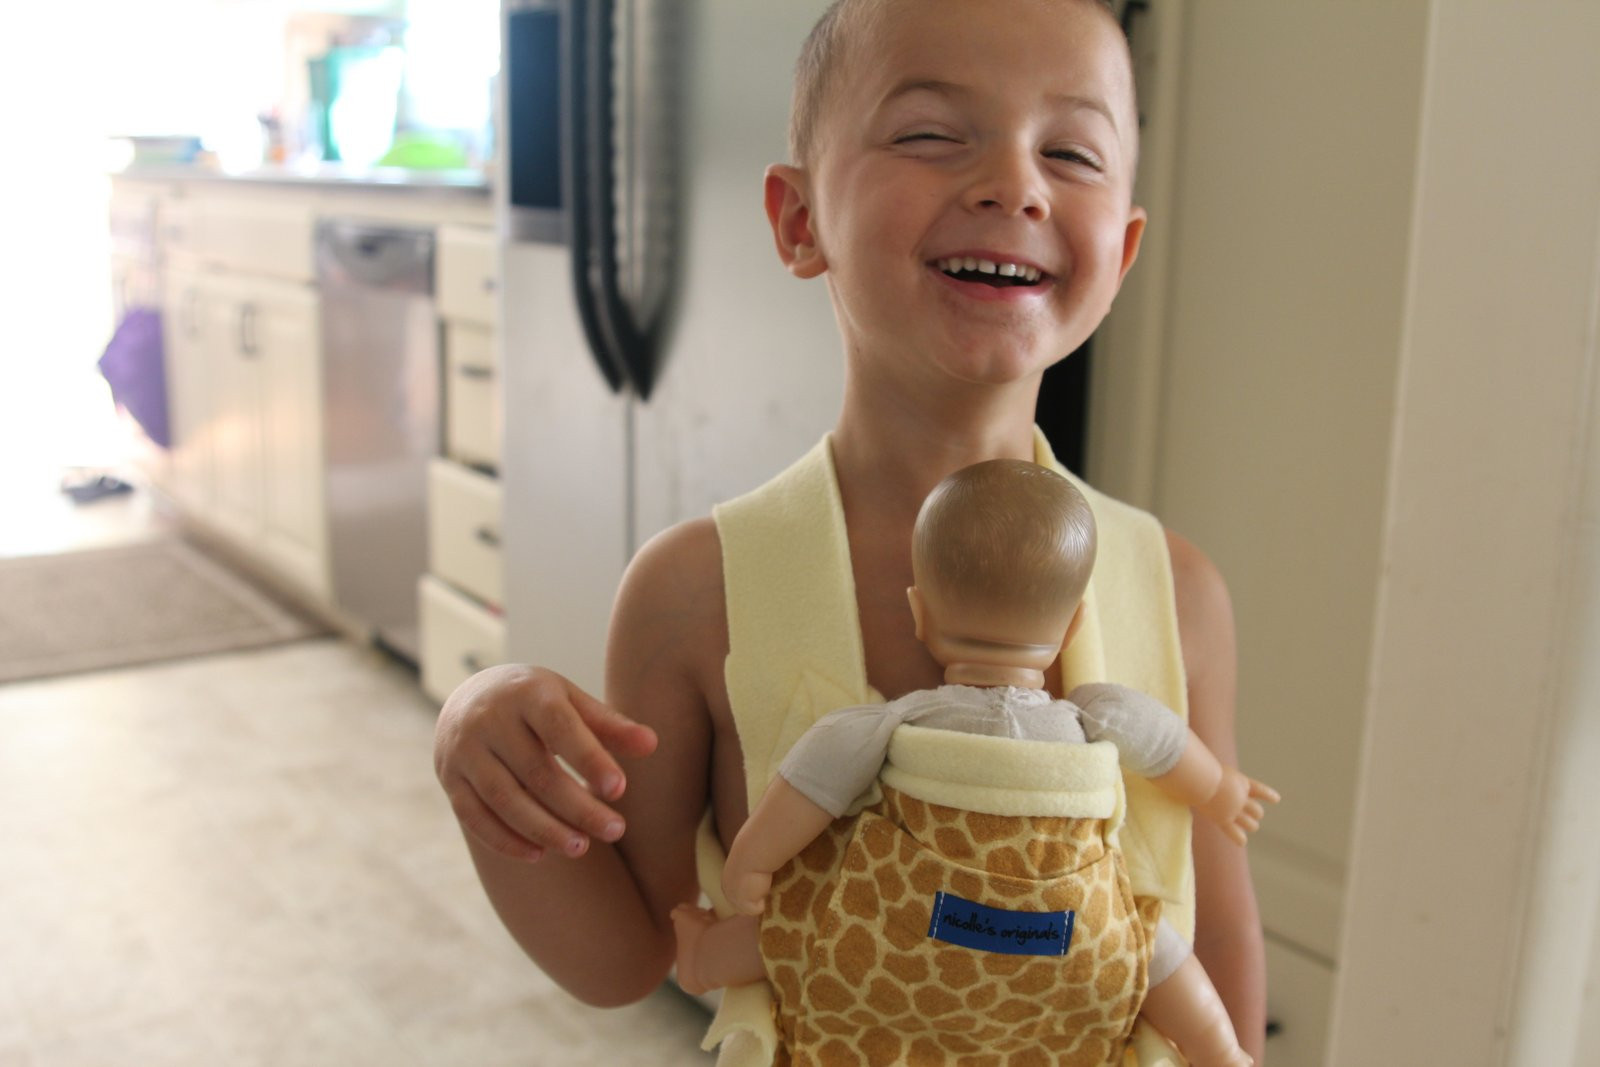 Best ideas about DIY Baby Doll Carrier . Save or Pin Nicolle s Originals DIY Child s Ergo Baby Doll Carrier Now.